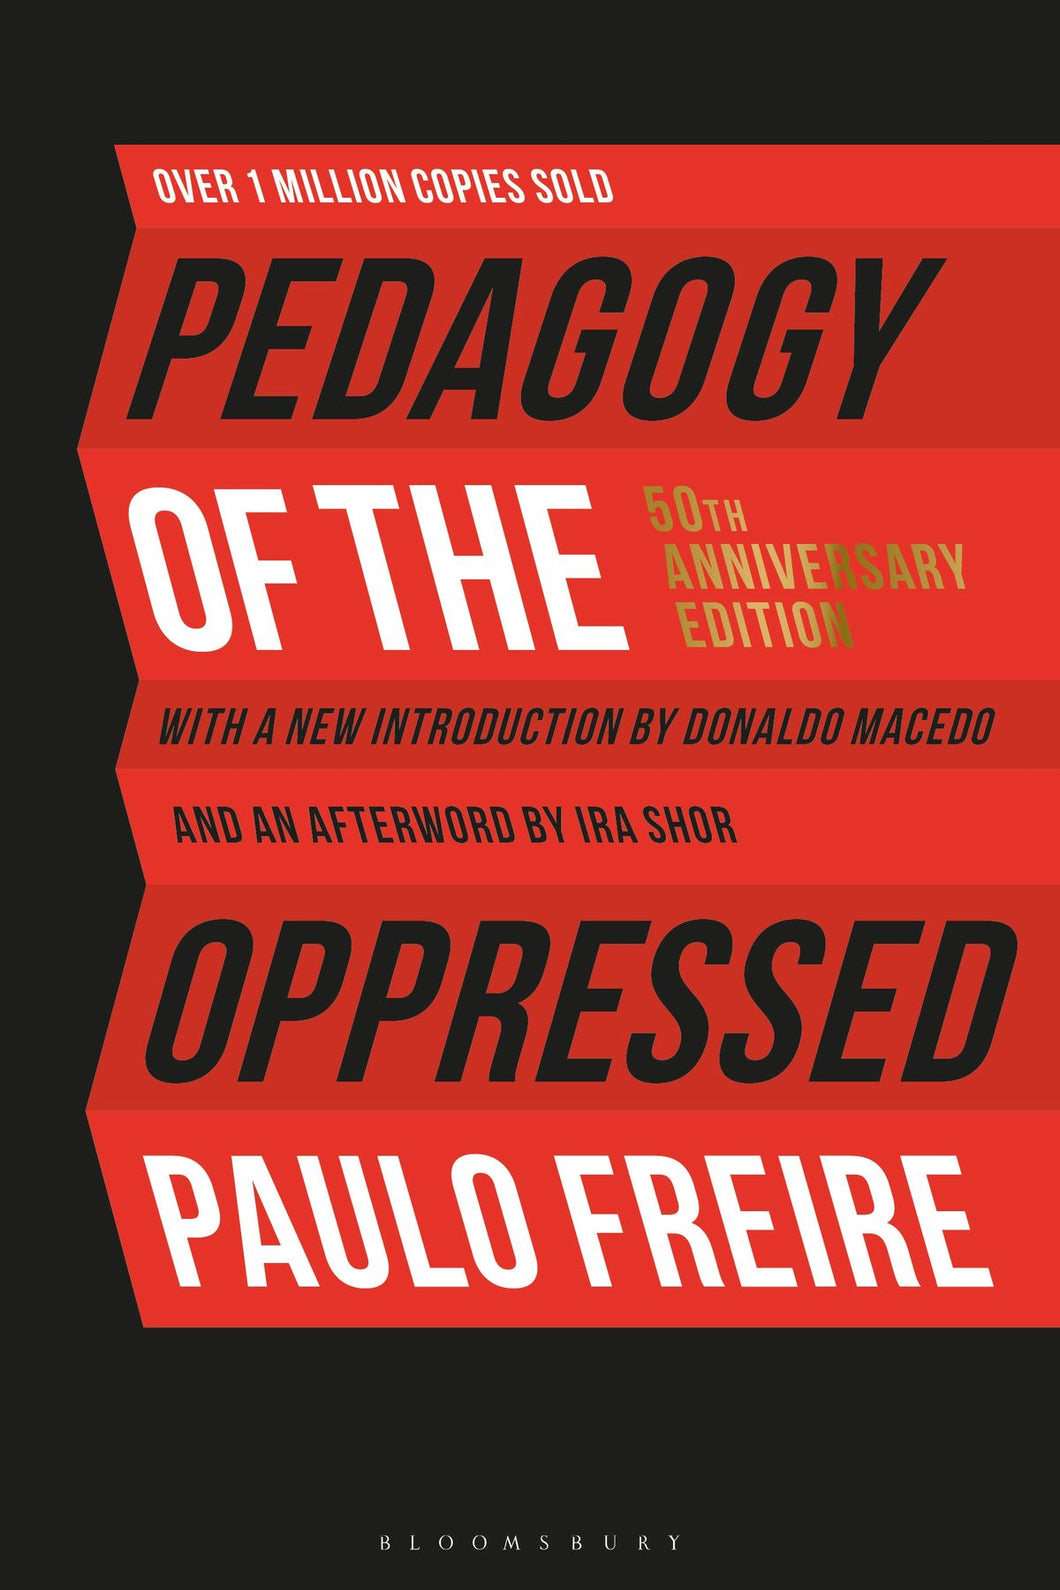 Pedagogy of the Oppressed by Paolo Freire